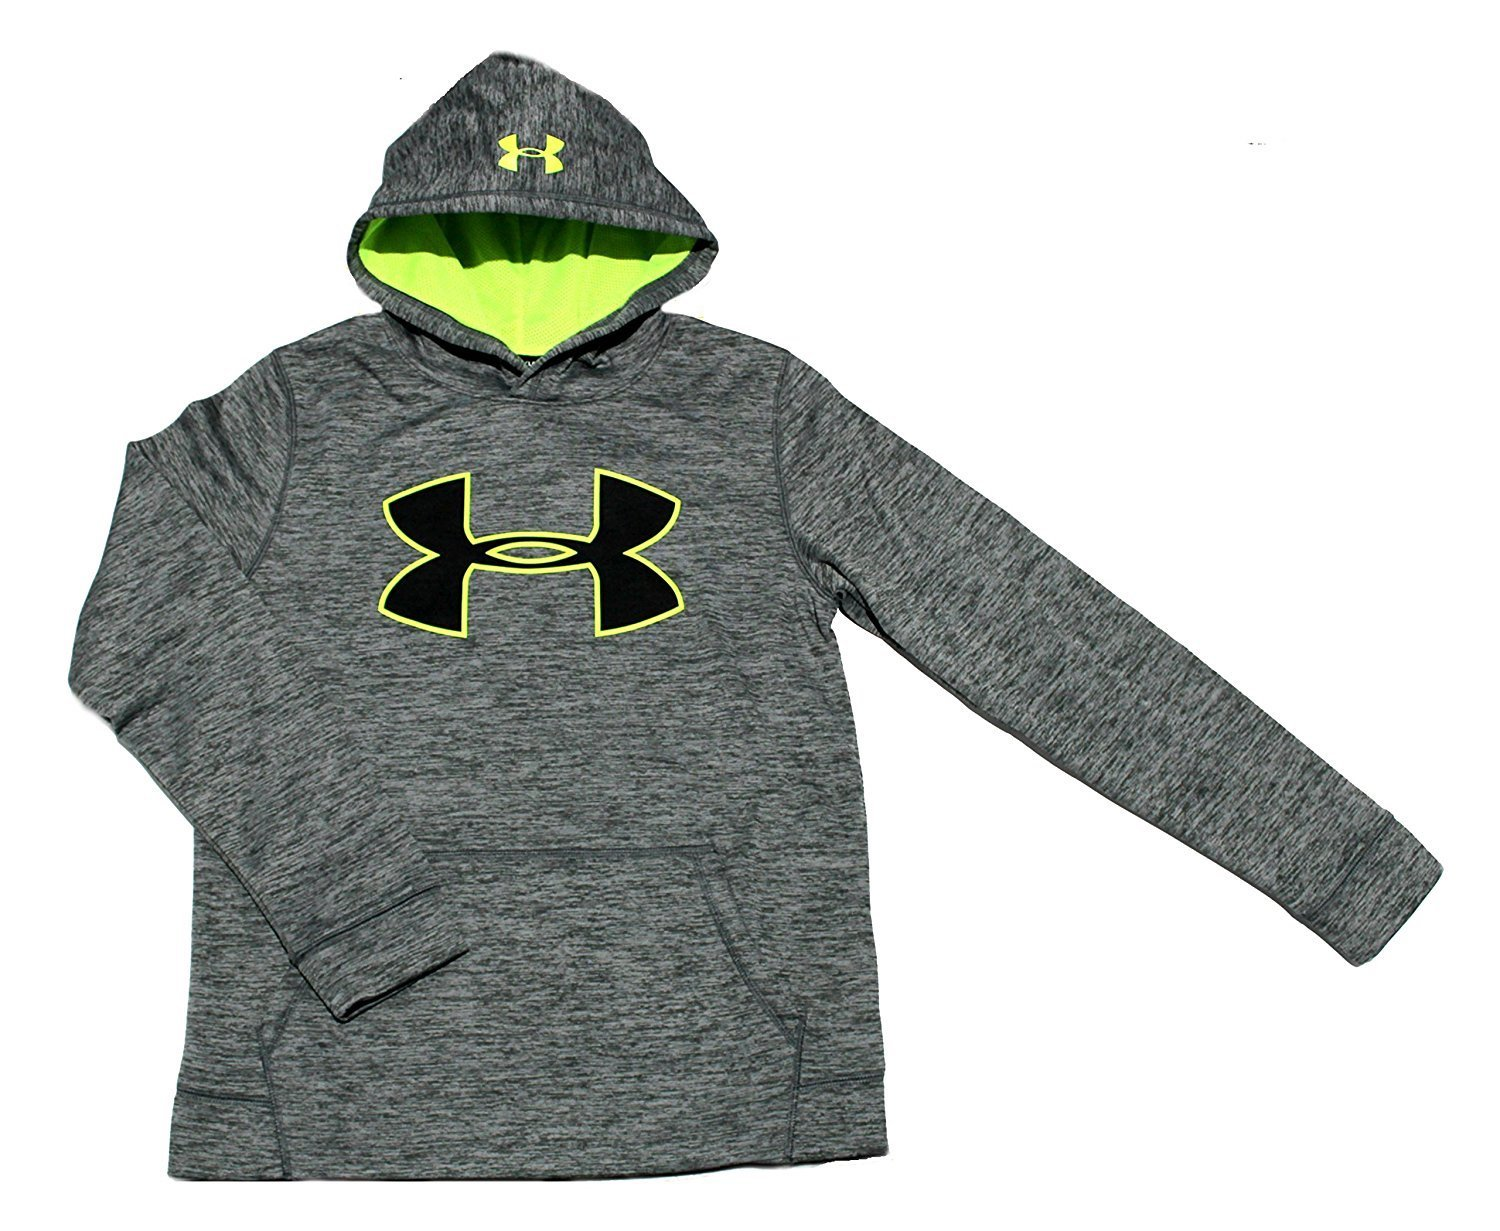 Under Armour Boys Youth Athletic STORM Fleece Hoodie Water Resistant Small